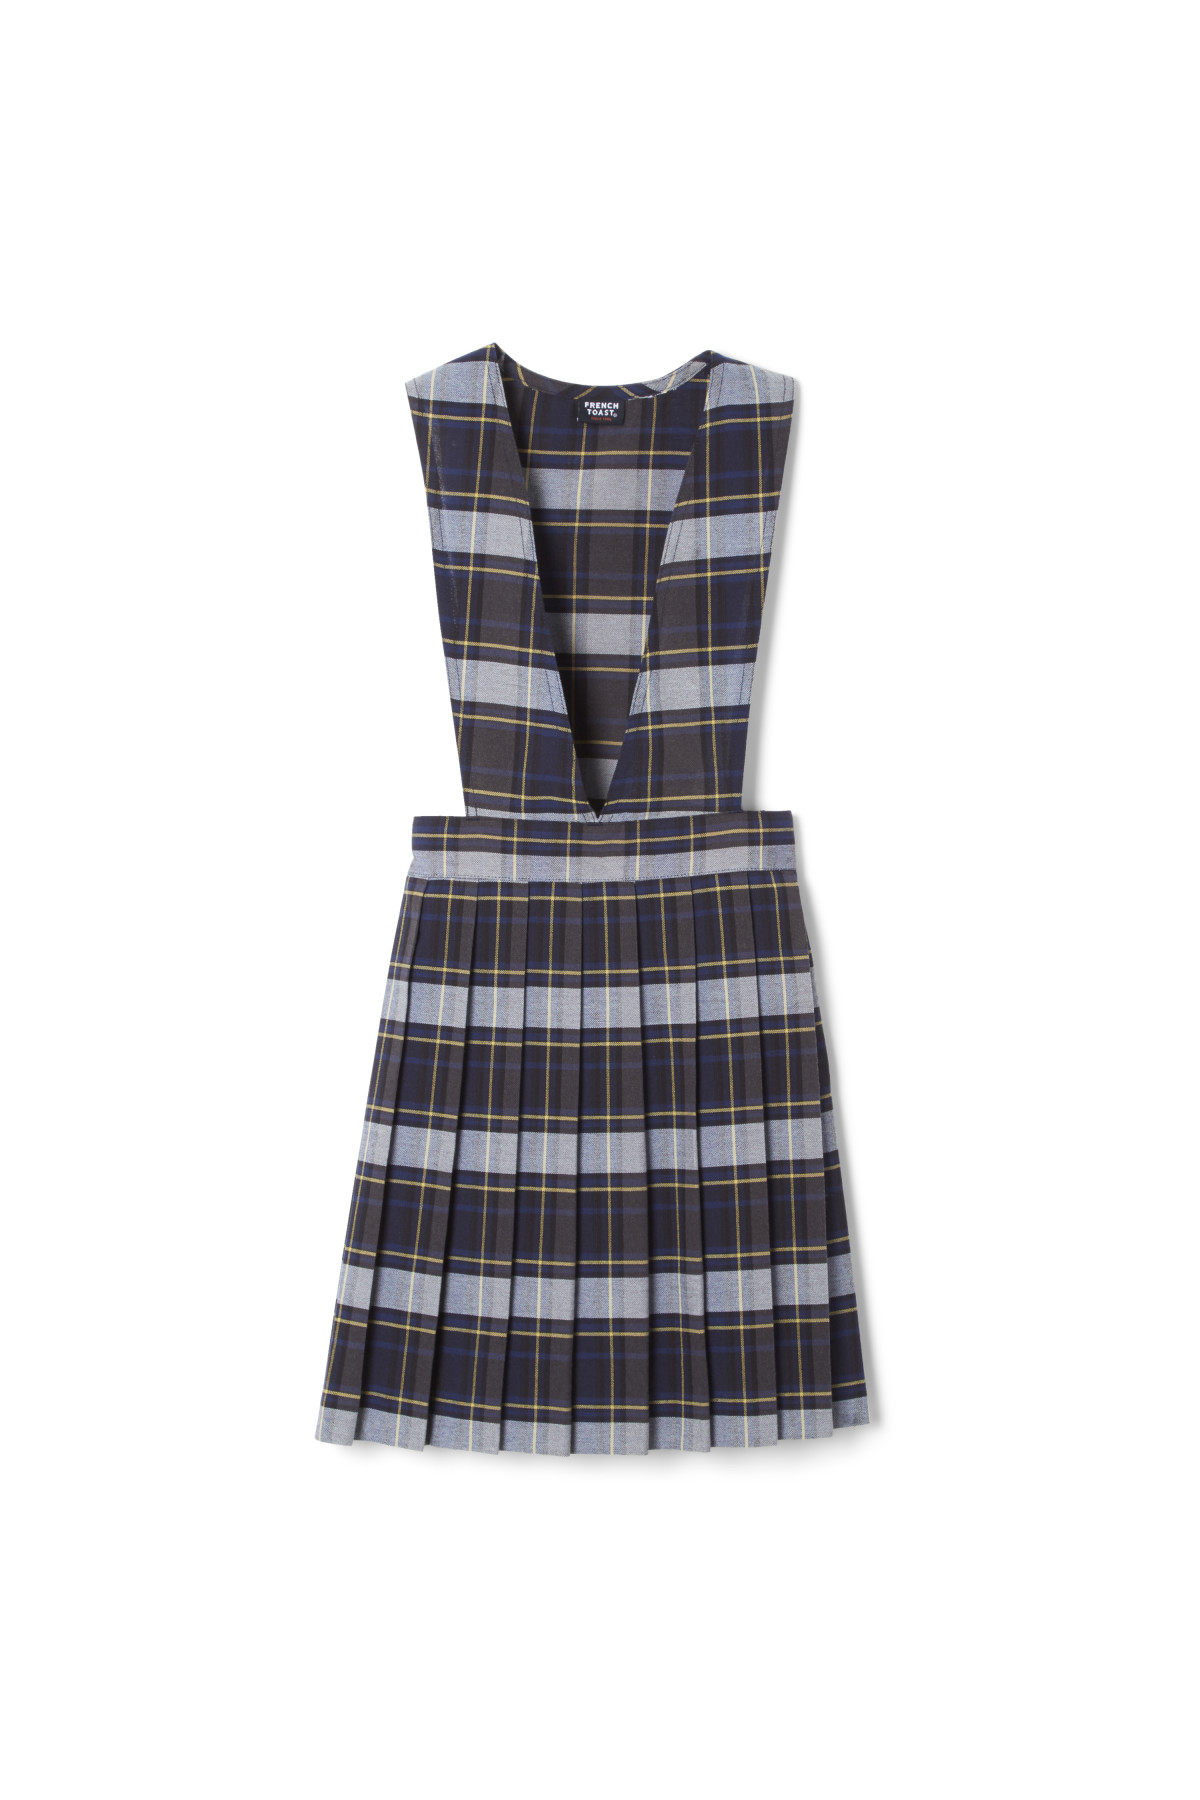 1ae828e7c Jumpers & Dresses - Girls School Uniforms   French Toast - French Toast